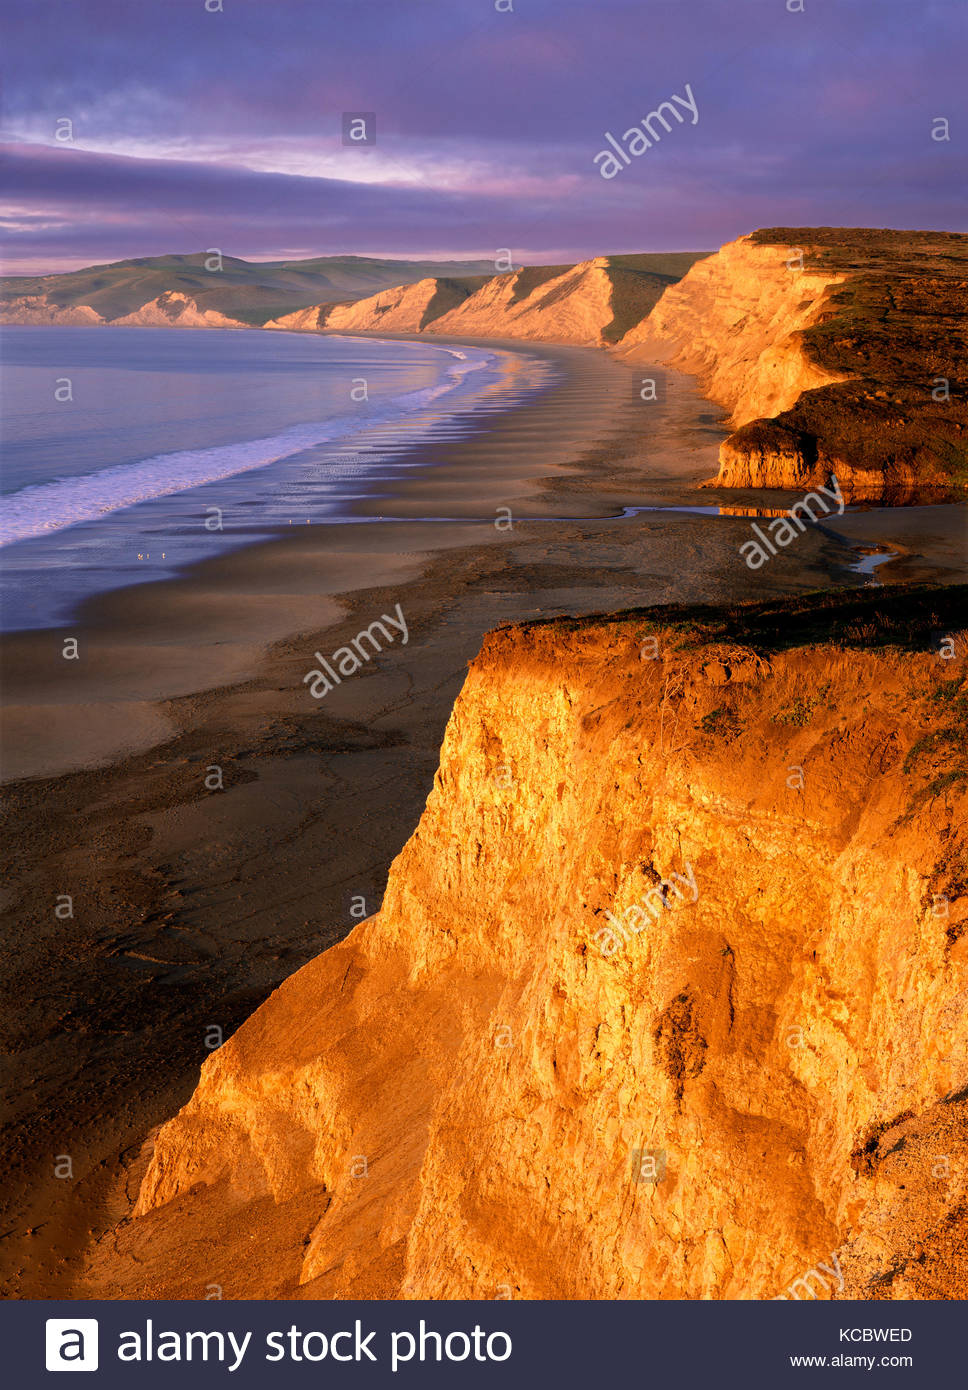 Sonnenaufgang am Strand Drakes, Point Reyes National Seashore, Kalifornien Stockbild